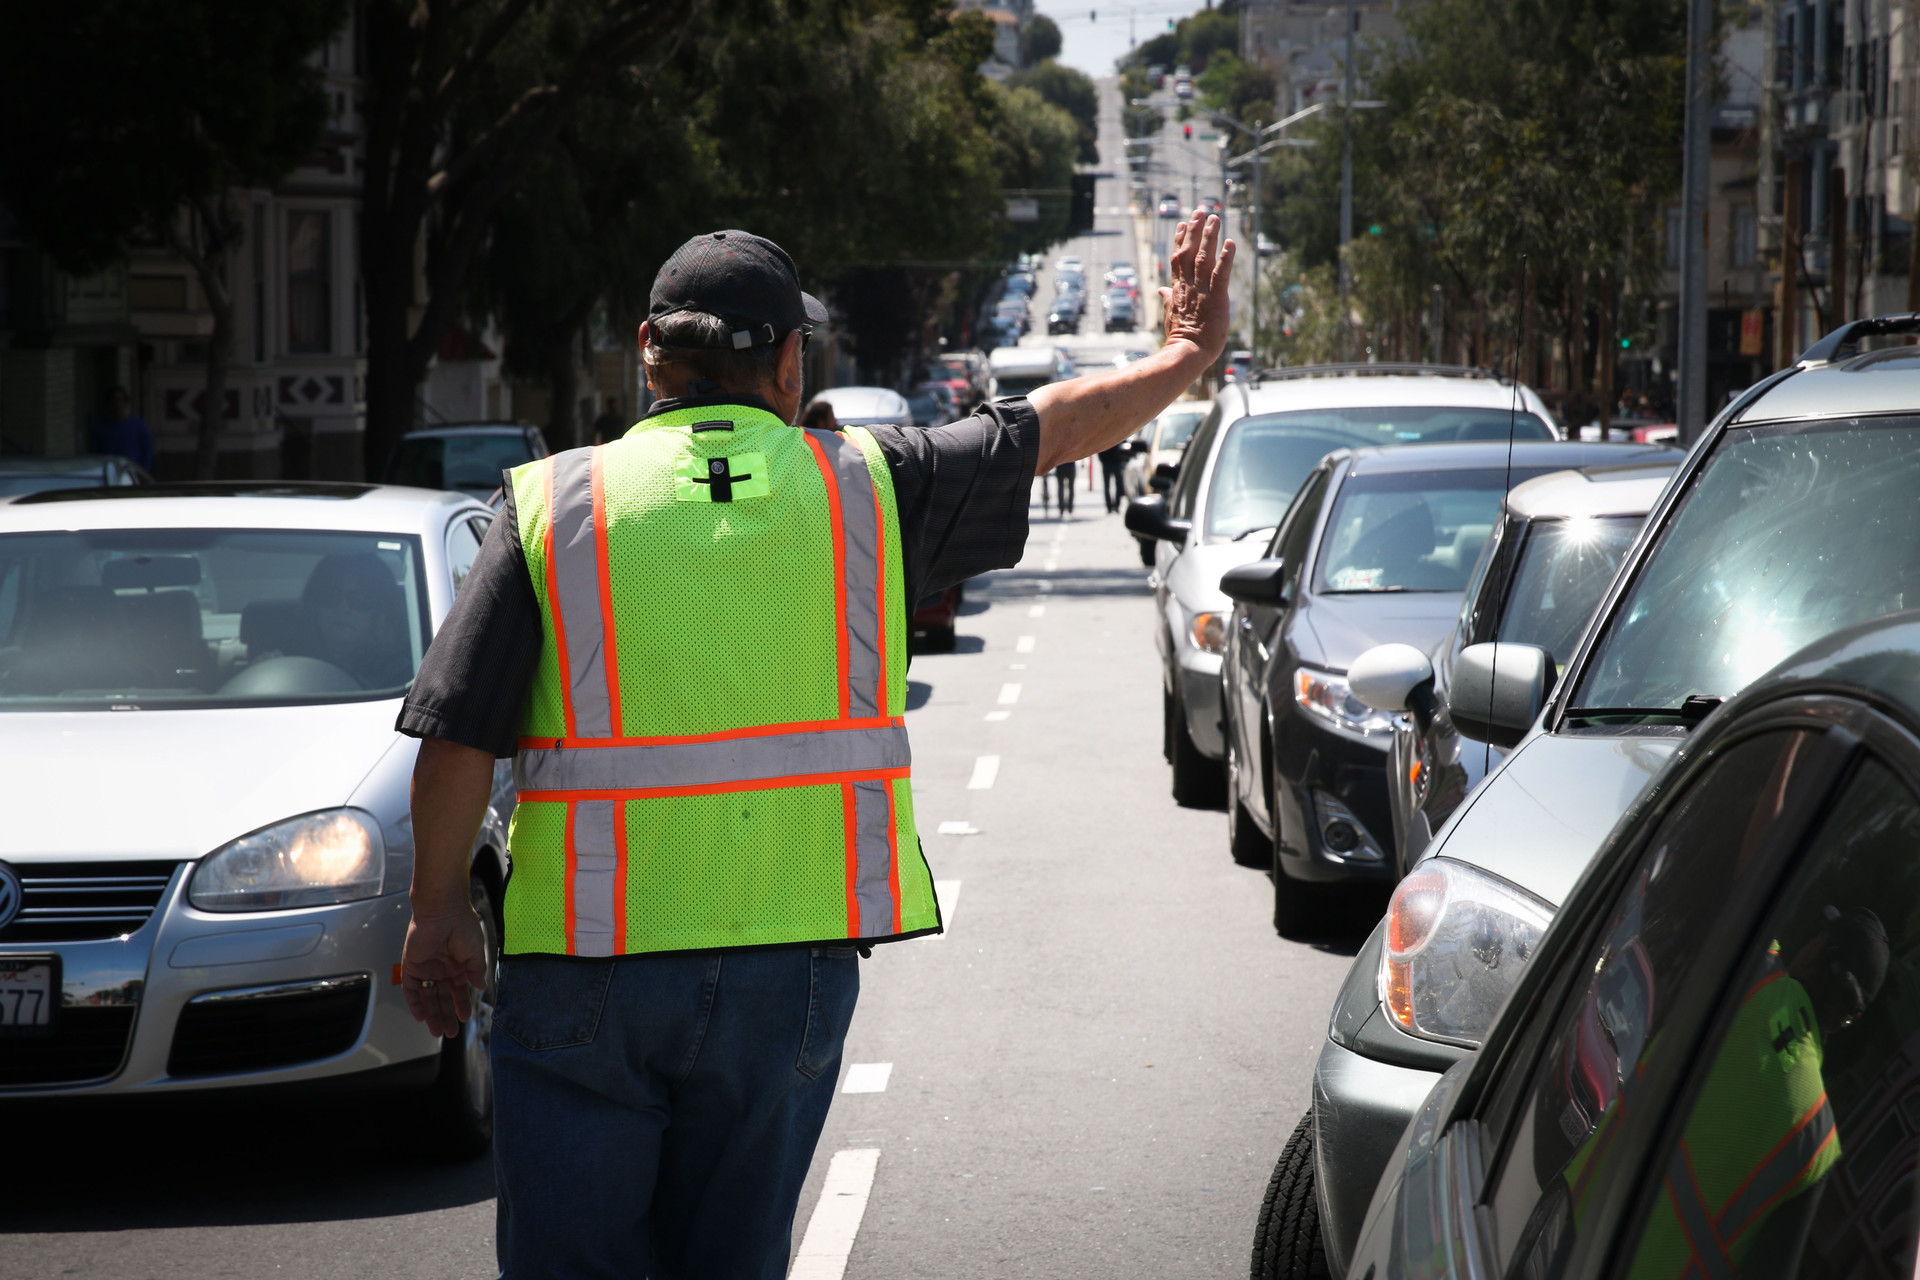 Jimenez says sometimes looking official means his parking crew is verbally assaulted by drivers, especially when big events happen like Bay to Breakers.